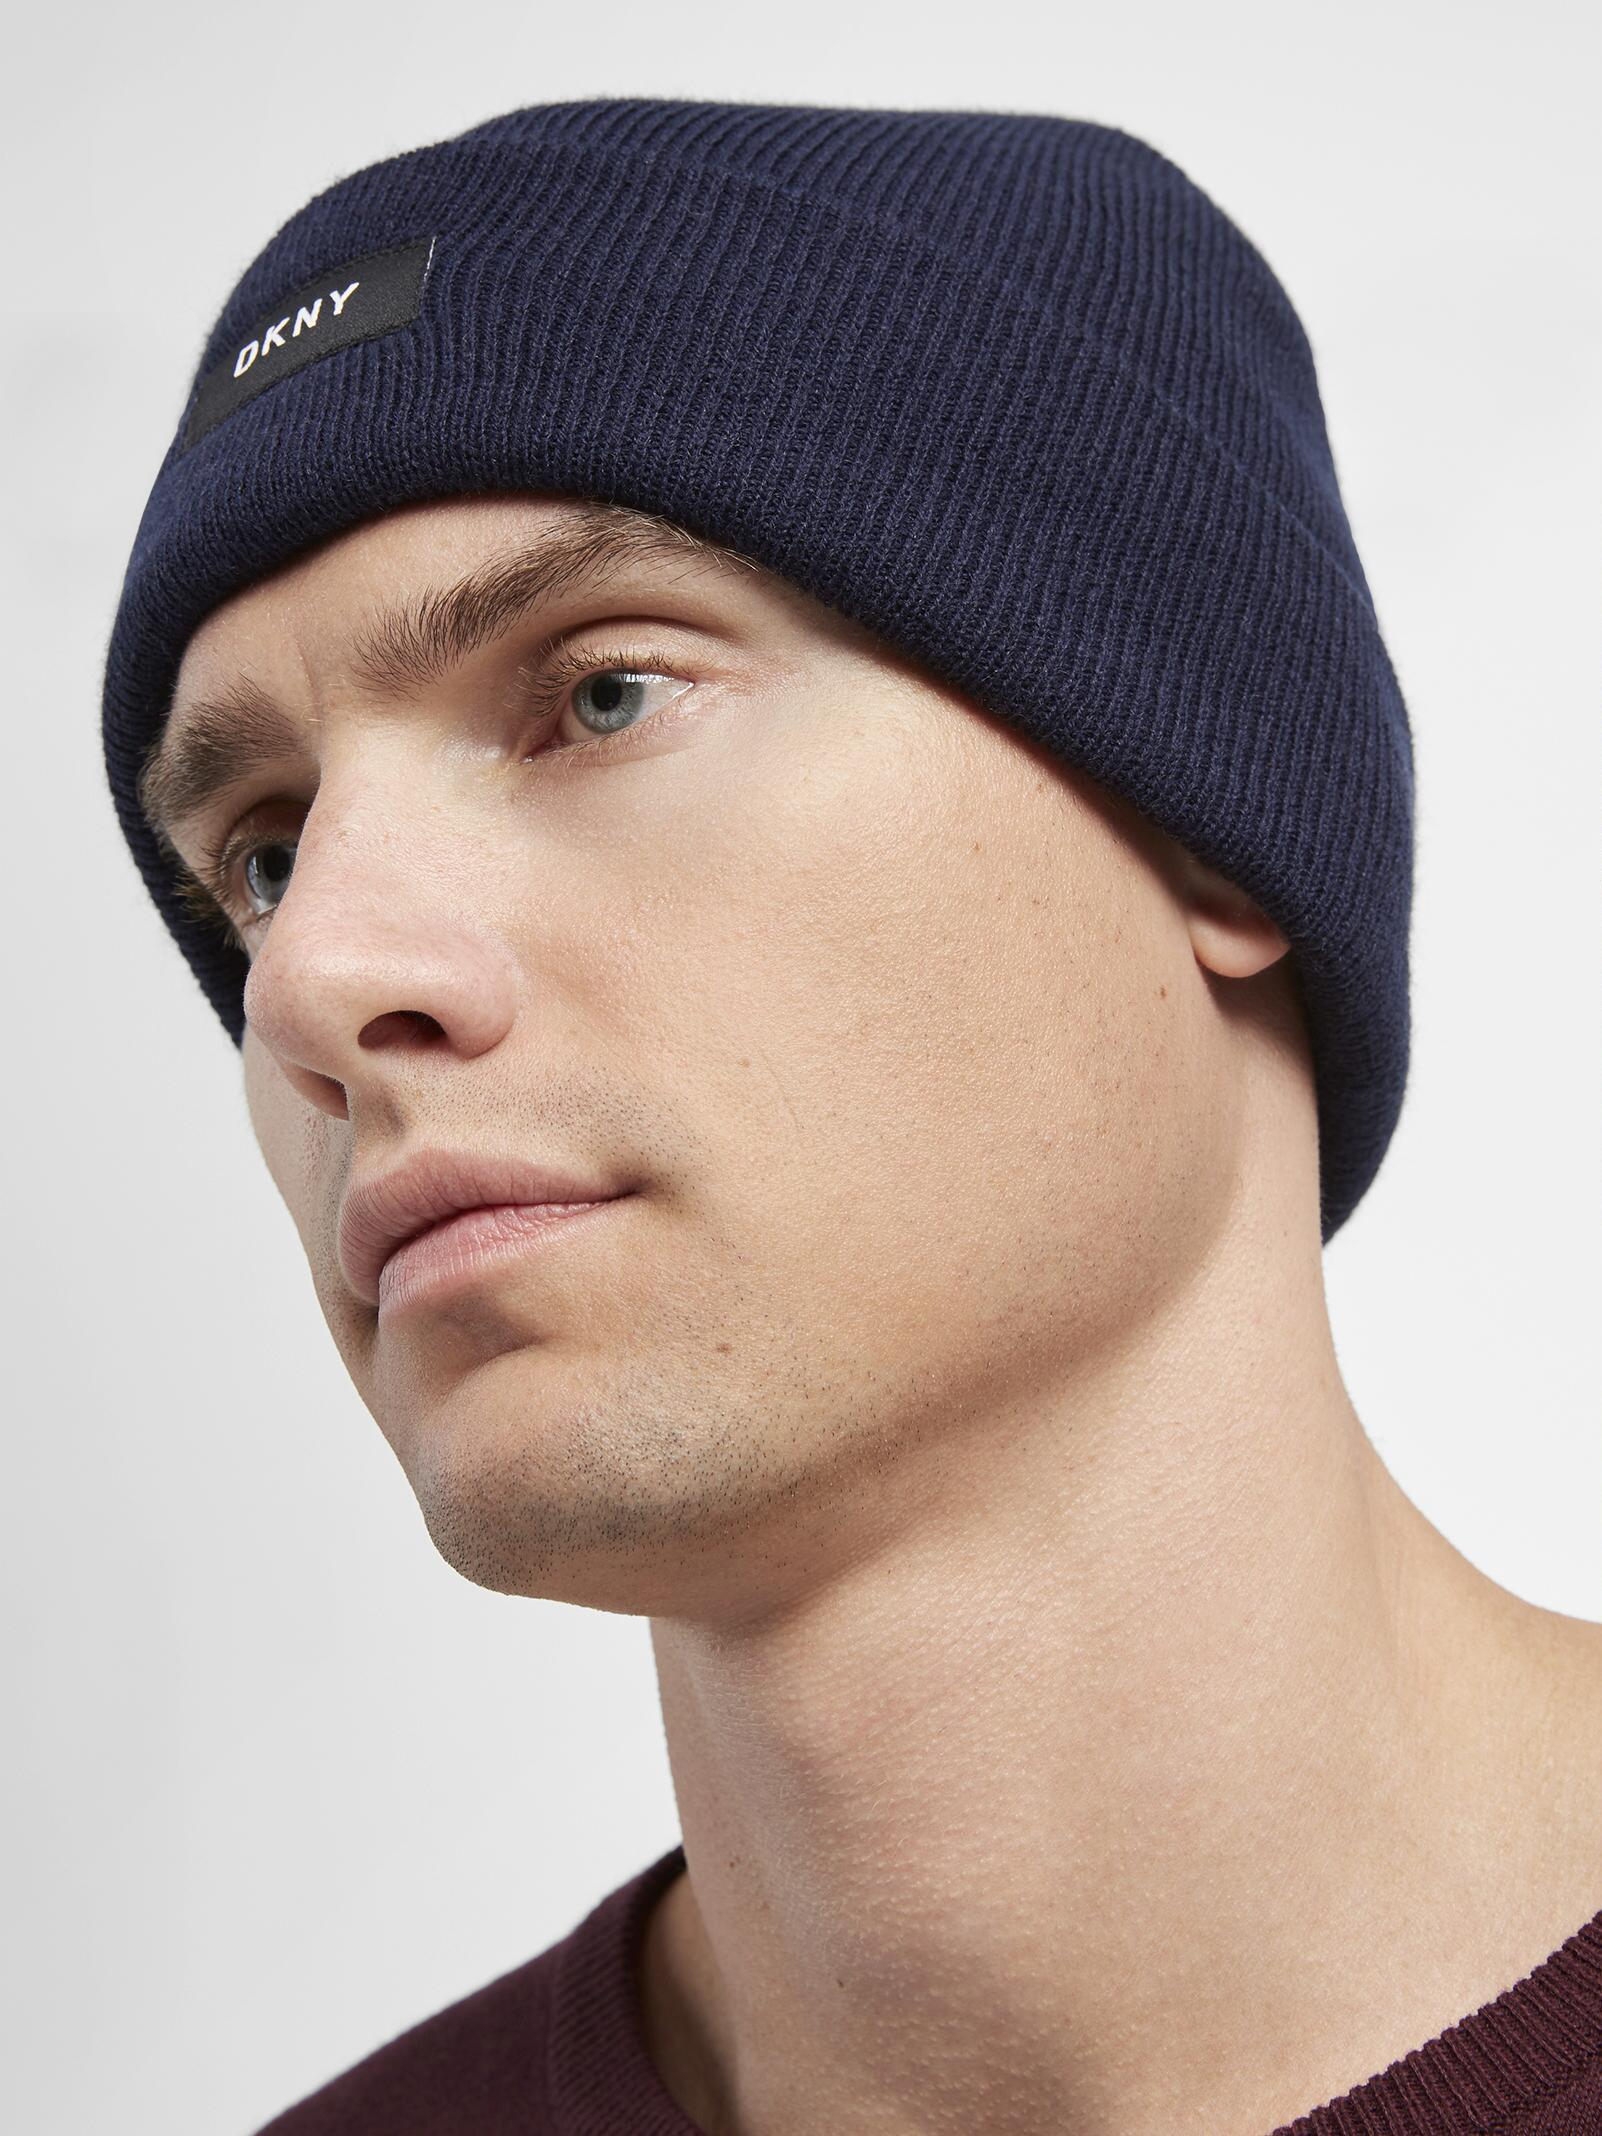 Lyst - DKNY Fold Over Hat in Blue for Men a7ed080bc2ee